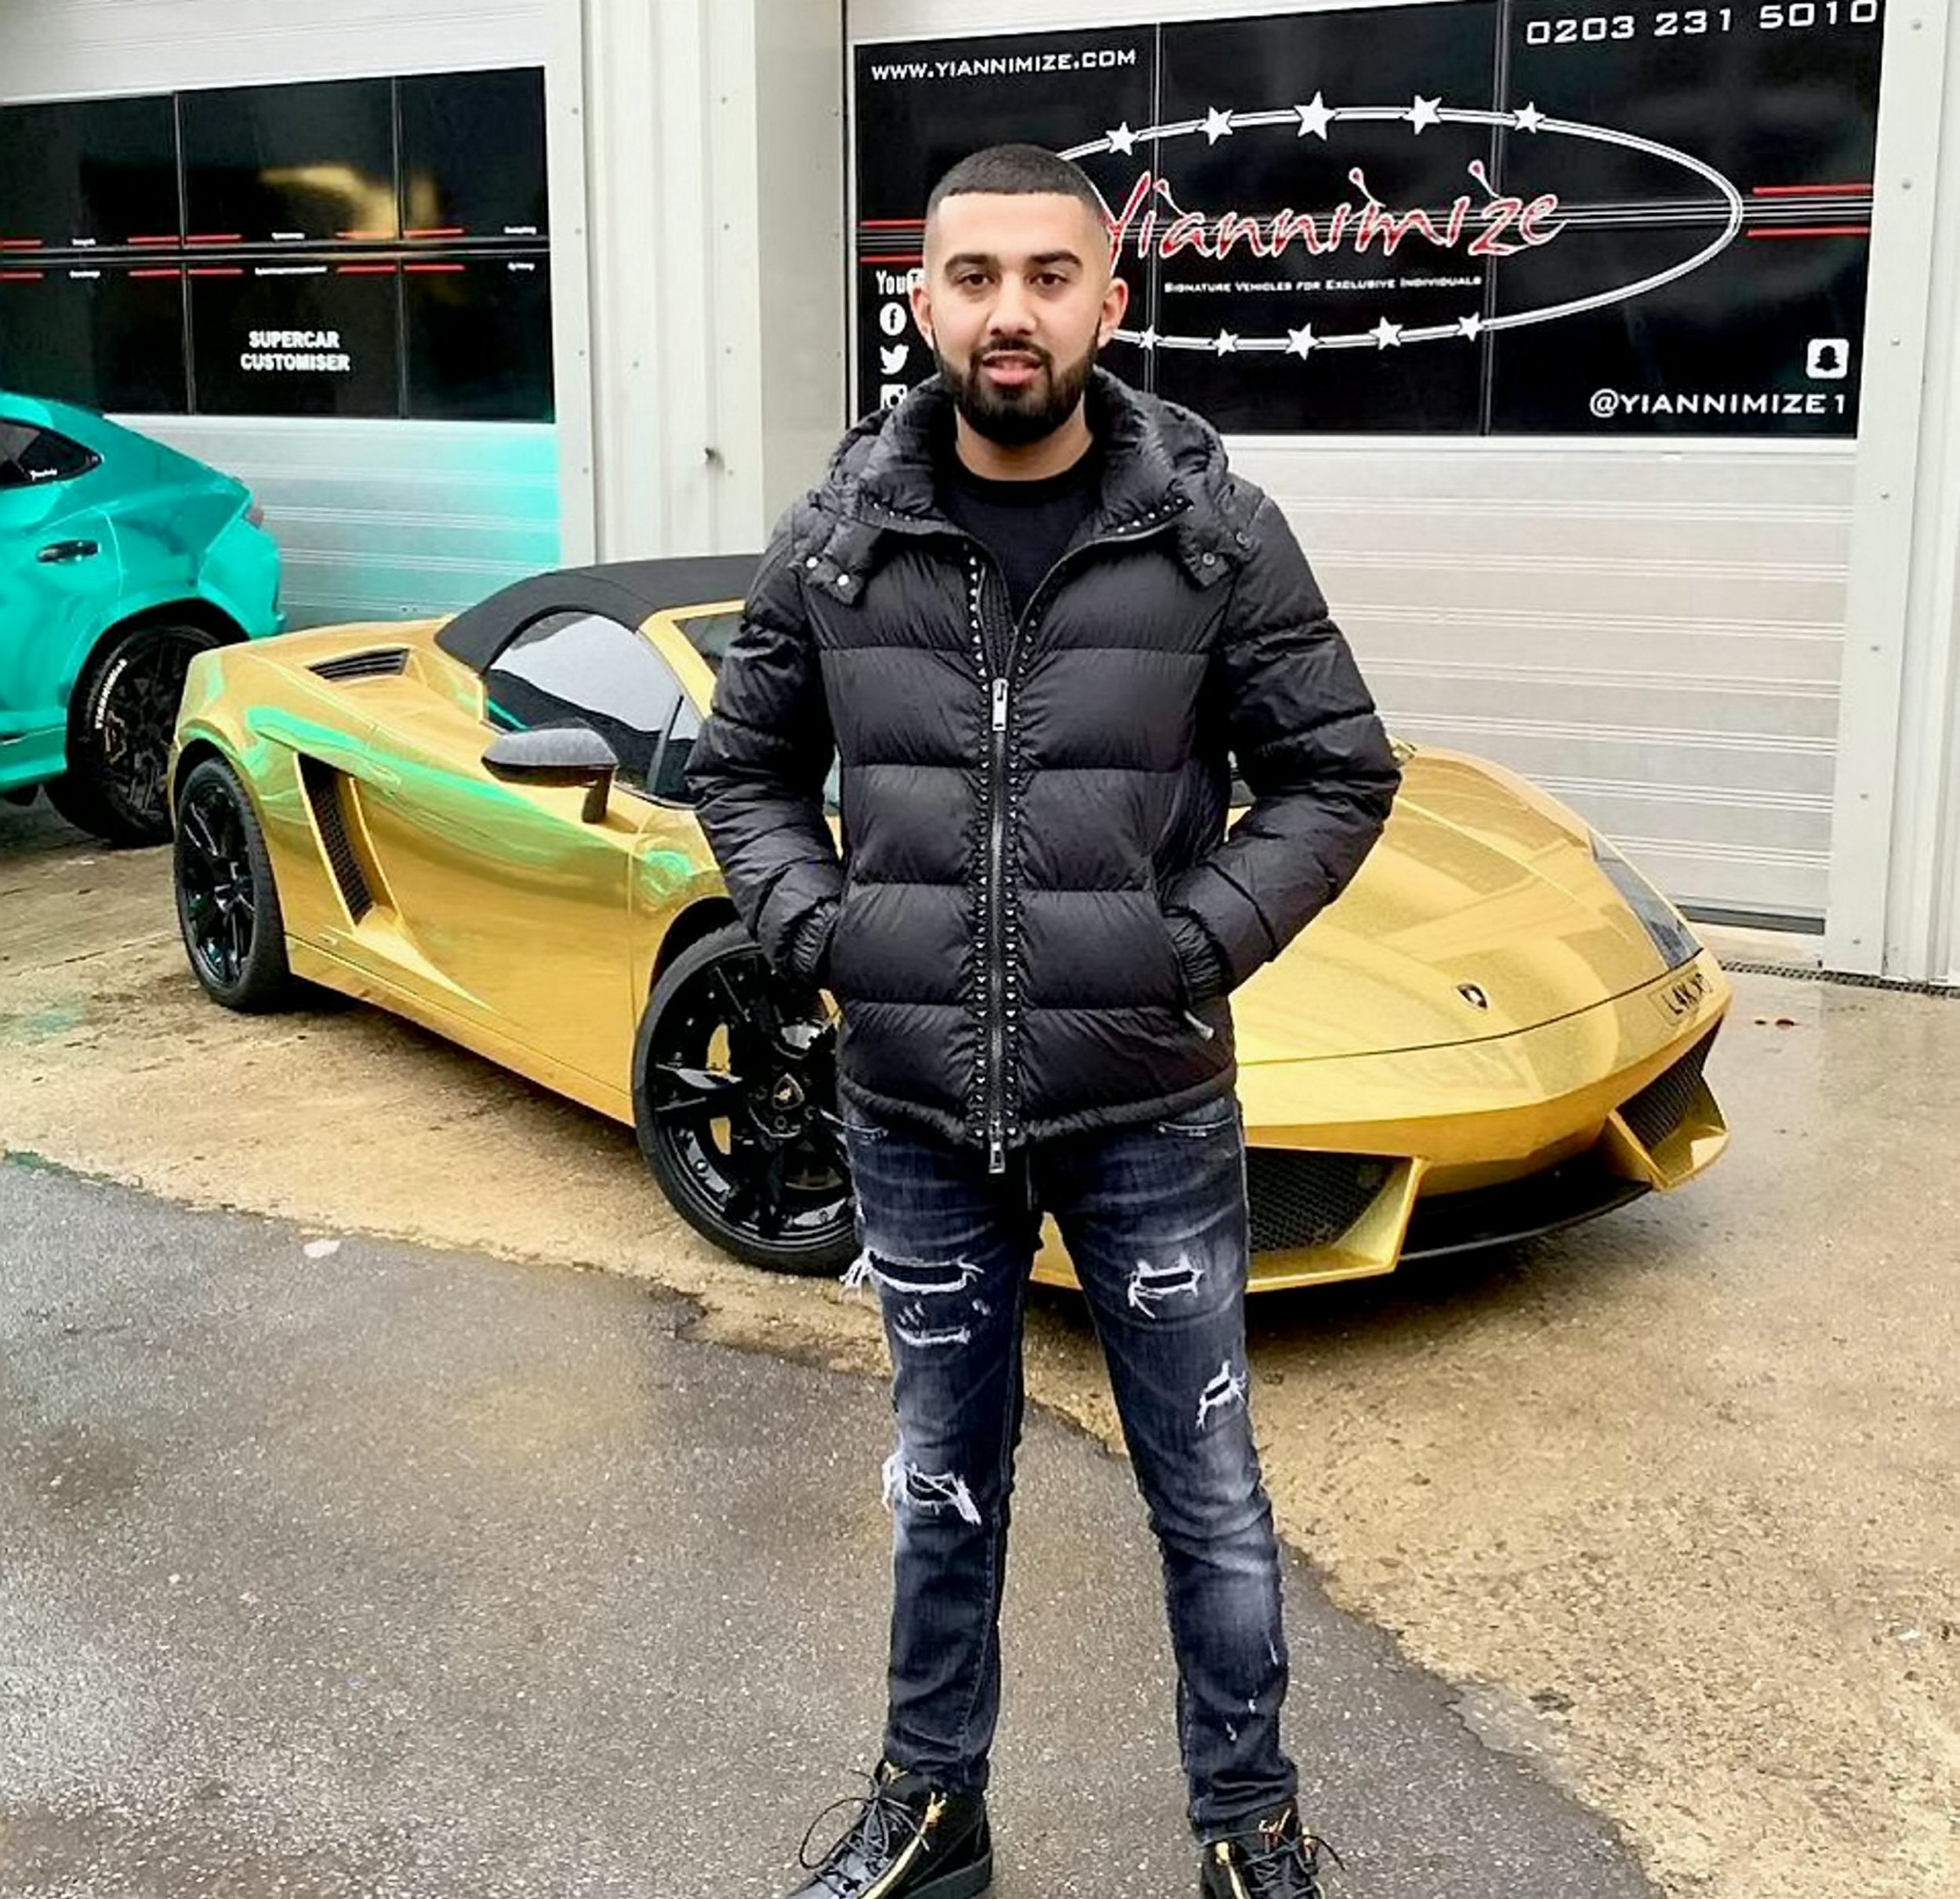 "Lak Sira with his Lamborghini Gallardo which caught fire on the motorway. See SWNS story SWMDlambo; A young businessman was left gutted after his prized ?125,000 Lamborghini Gallardo burst into the flames on the motorway - just an hour after picking it up from the garage. Lak Sira, 22, said he was nearly killed after his ""pride and joy"" supercar went up in smoke as he drove along the M6 with his girlfriend last Friday (22/2). The entrepreneur had been on his way to London when he smelt petrol and was forced to pull over on the hard shoulder near Birmingham. He then jumped from the gold chrome-plated car after hearing a loud bang and watched helplessly as the luxury vehicle was engulfed in flames."